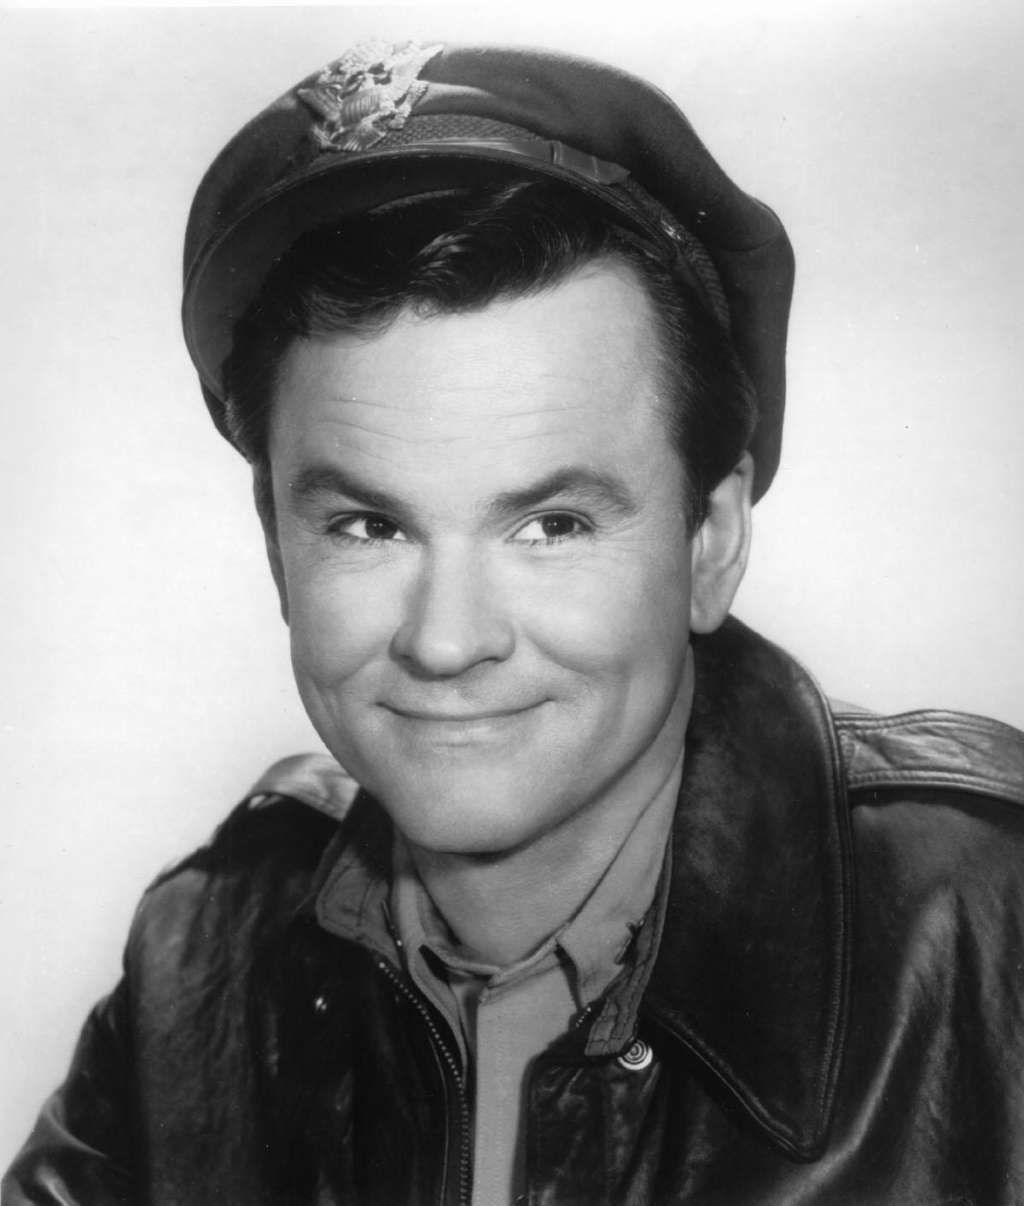 Menendez Brothers Murder Facts Law And Order True Crime: 1960s Sitcom Star Bob Crane From Hogan's Heroes Was